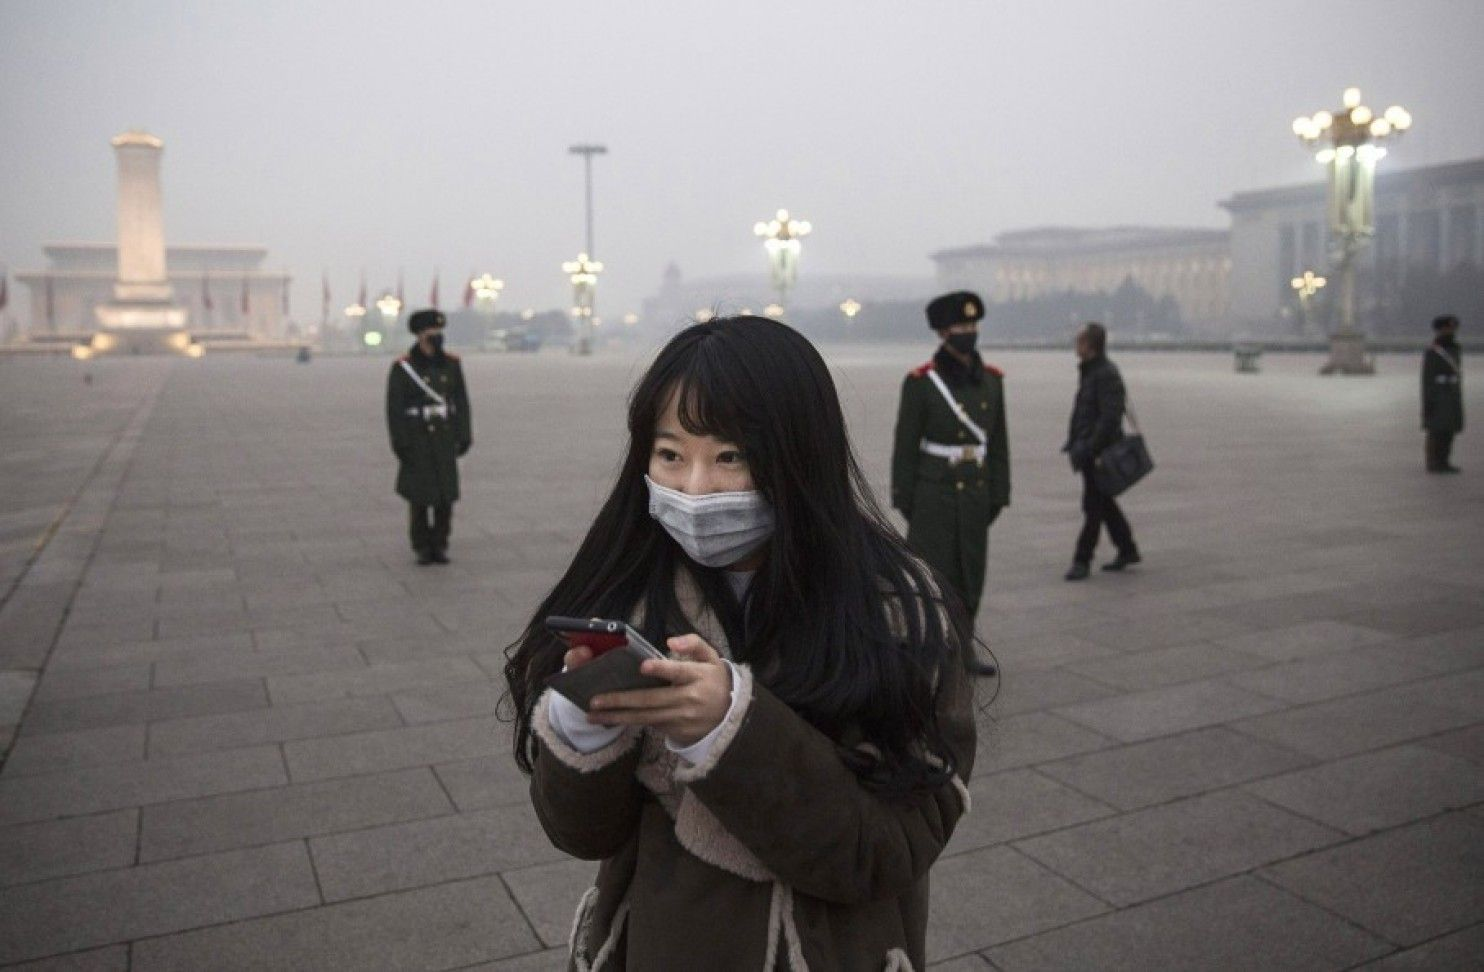 Pollution has increased by 8 percent in urban areas, the global health agency said.